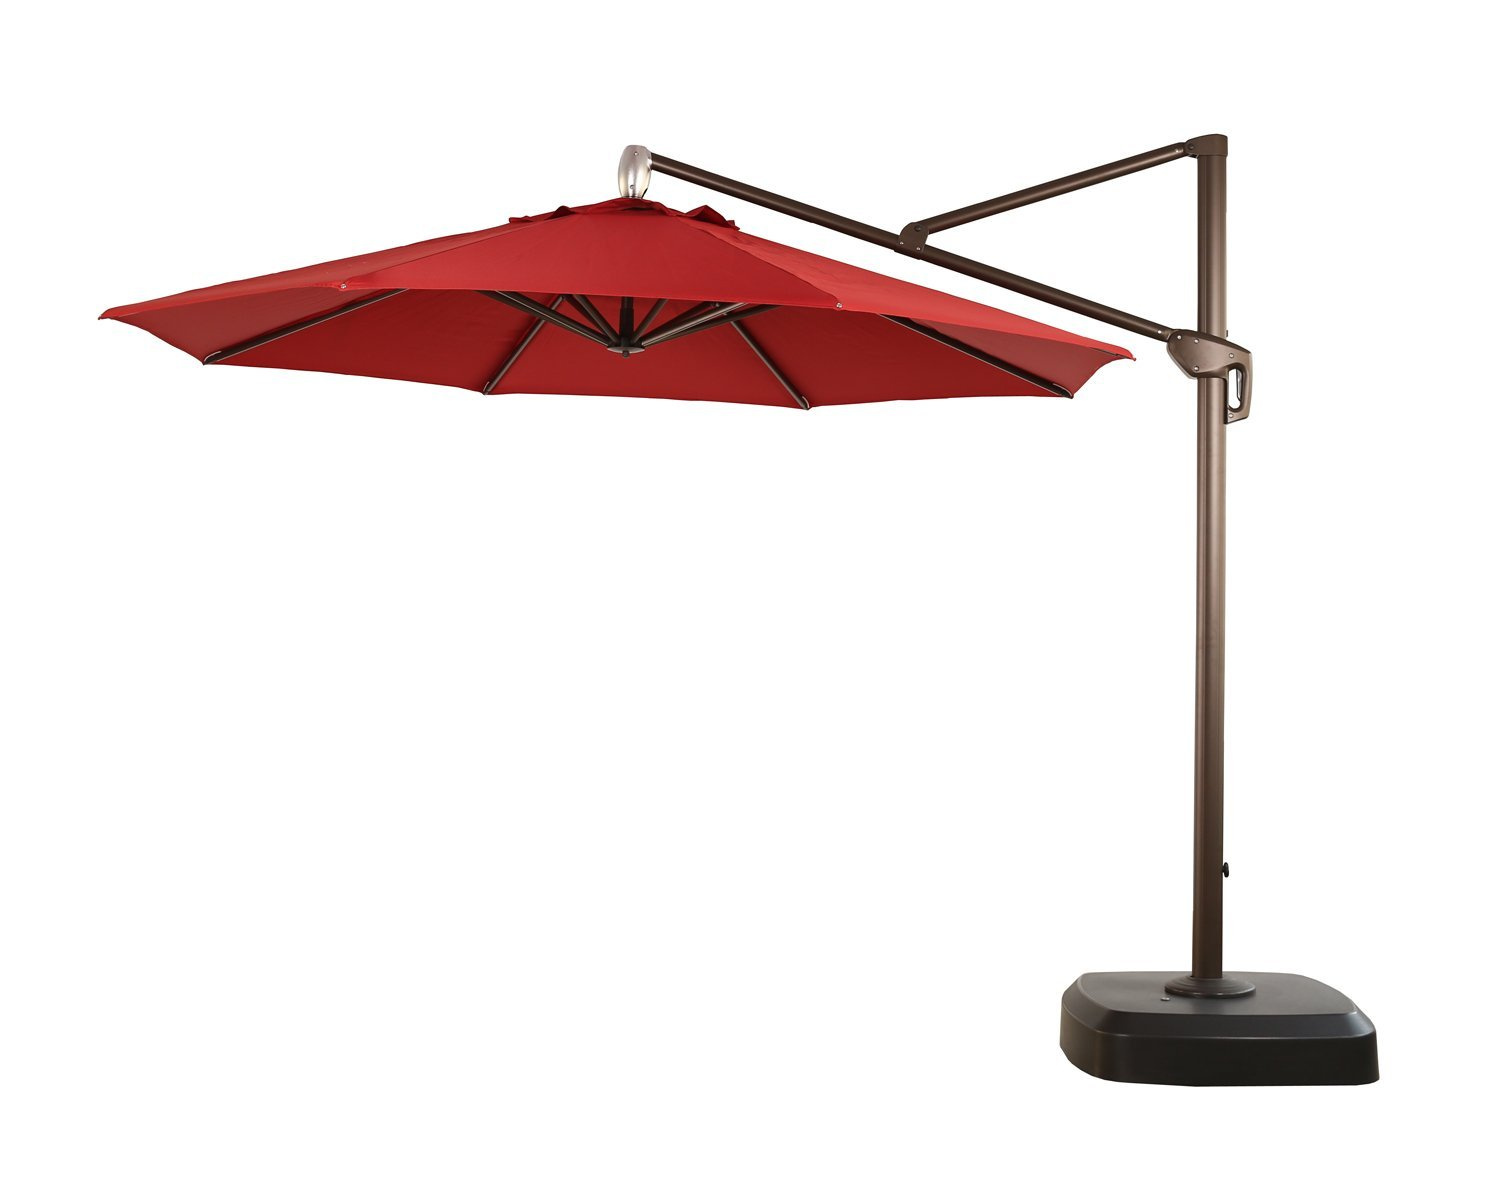 Ulax Furniture 360 Rotation 11 Ft Deluxe Outdoor Offset Hanging Market Umbrella Cantilever Patio